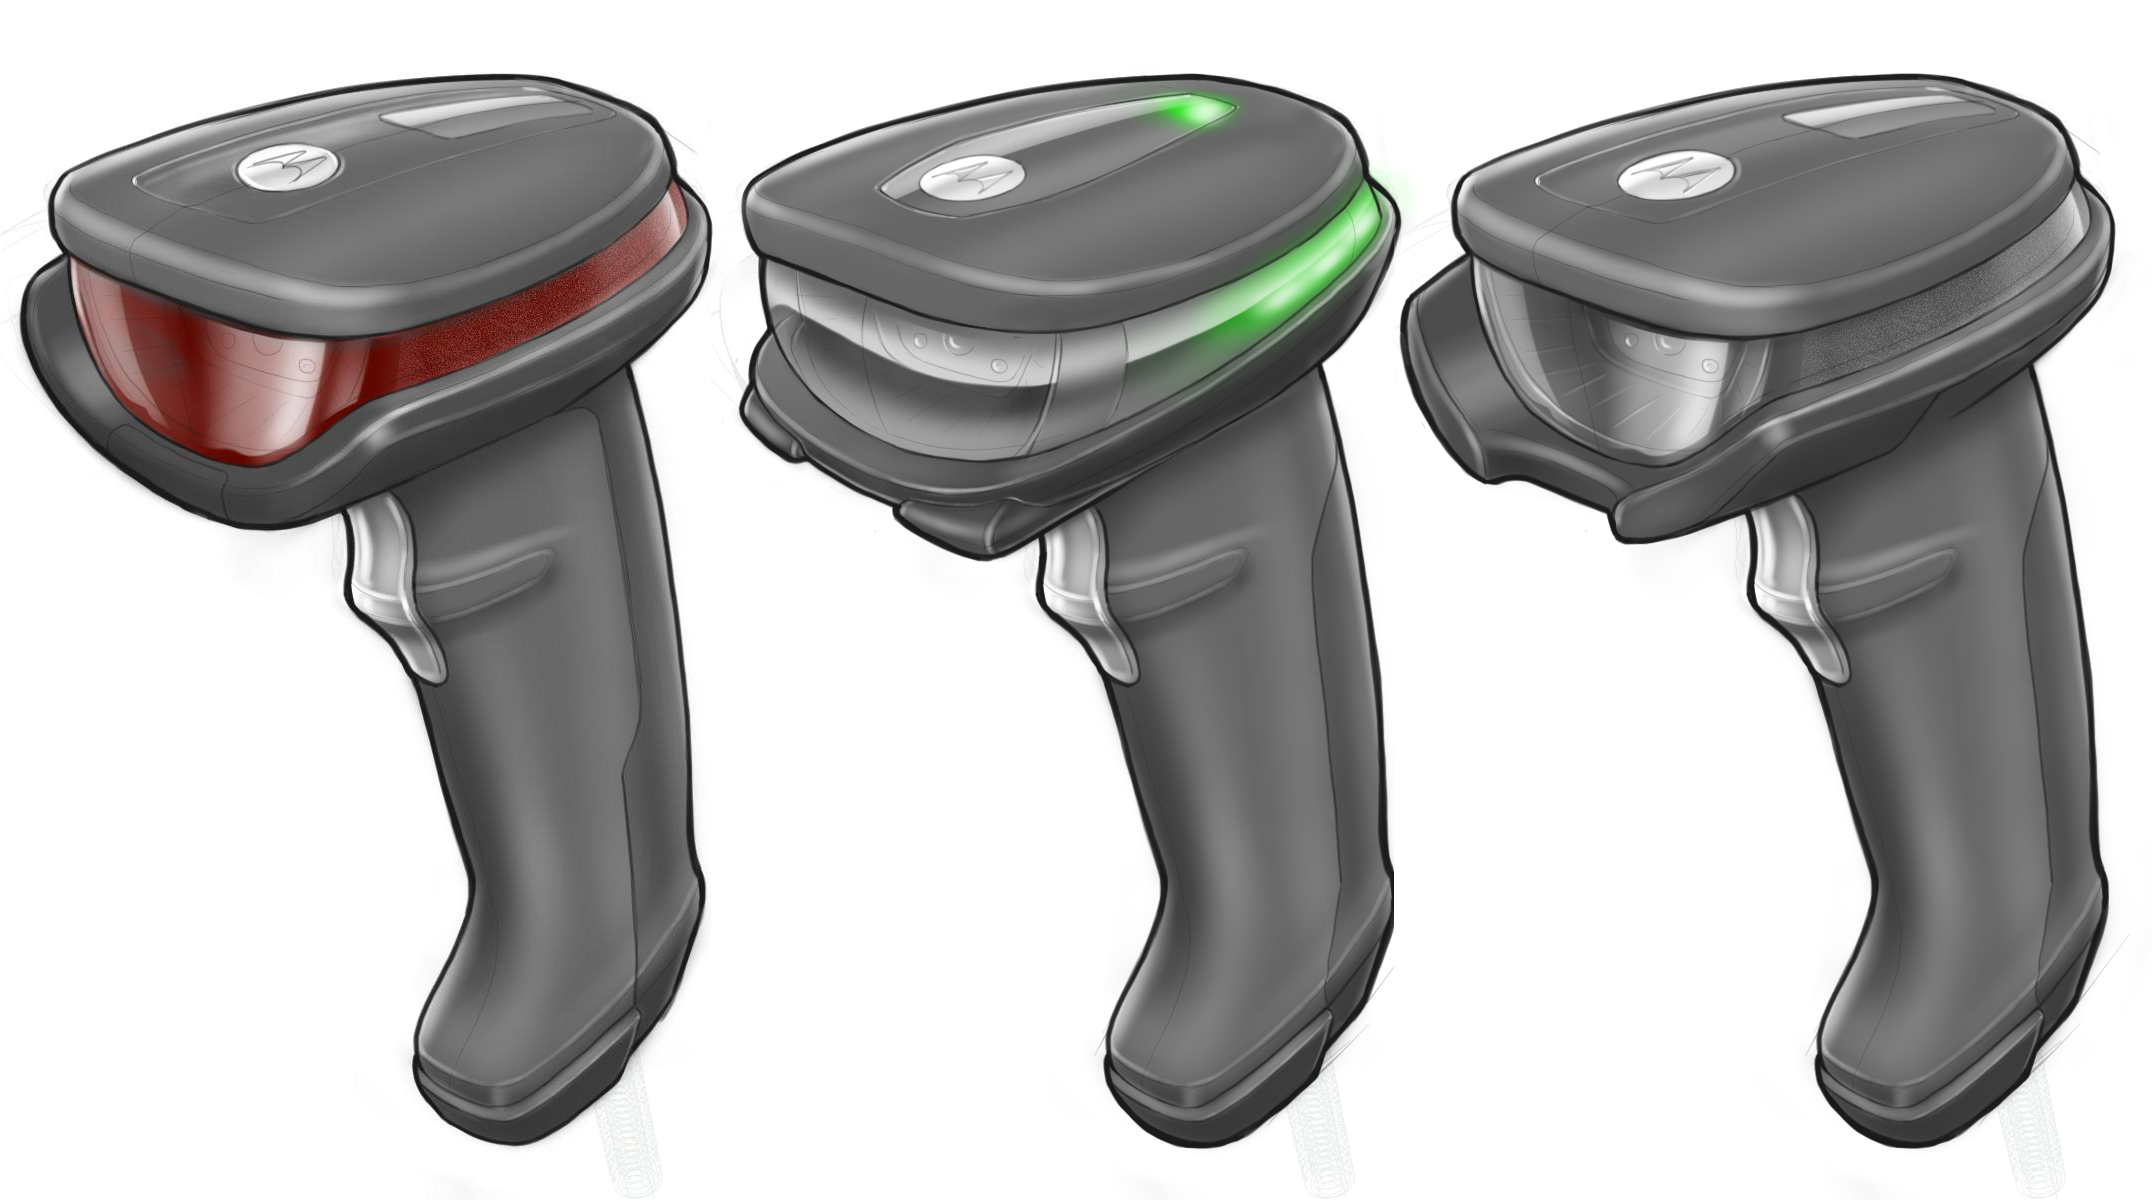 Concept sketches for different colours, materials and finishes of the low to mid-range Halo concept scanner